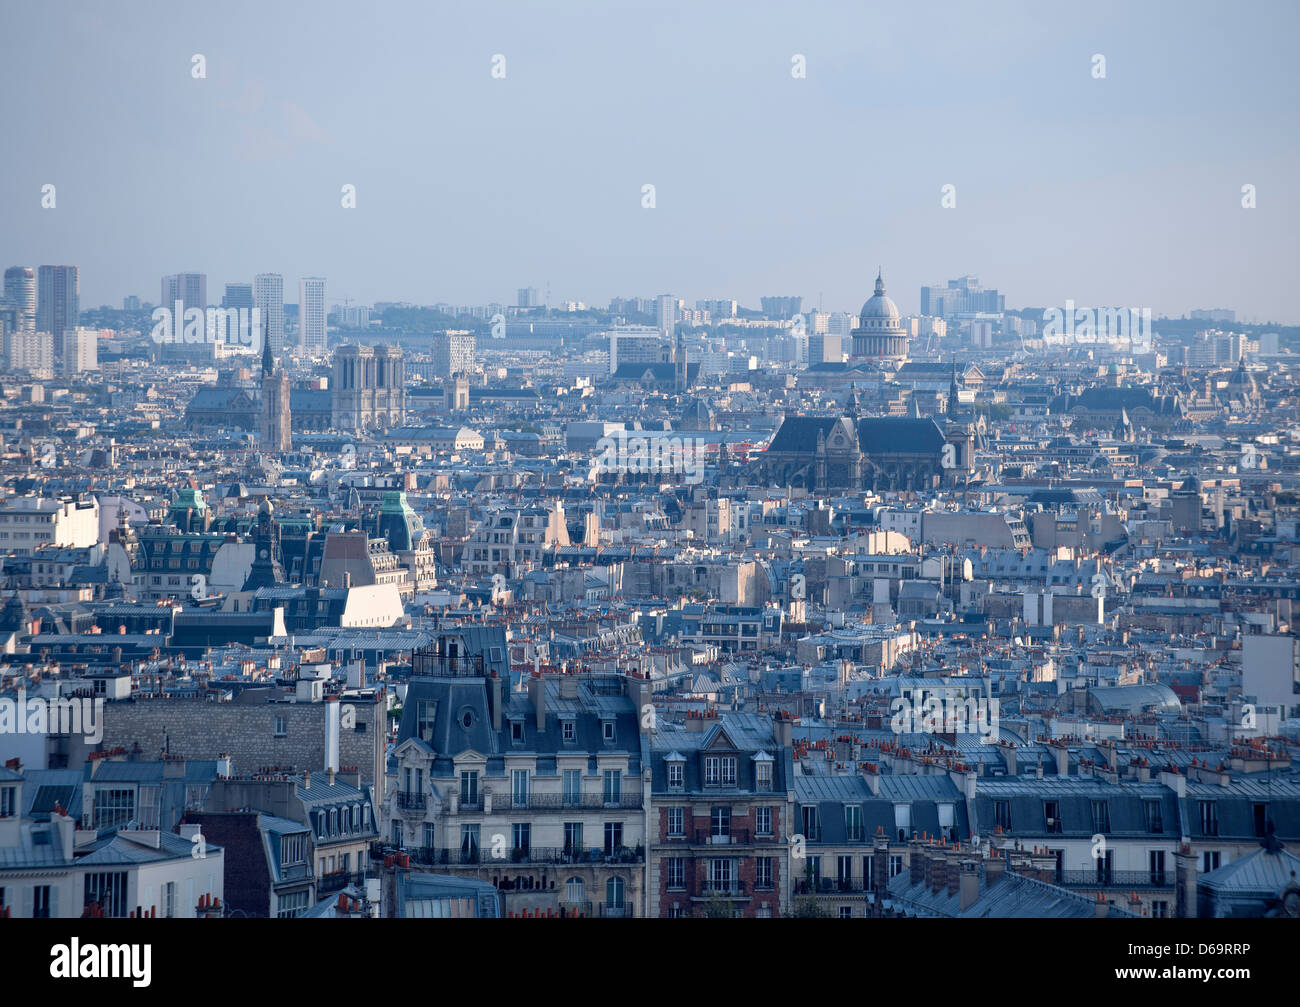 Aerial view of urban skyline - Stock Image